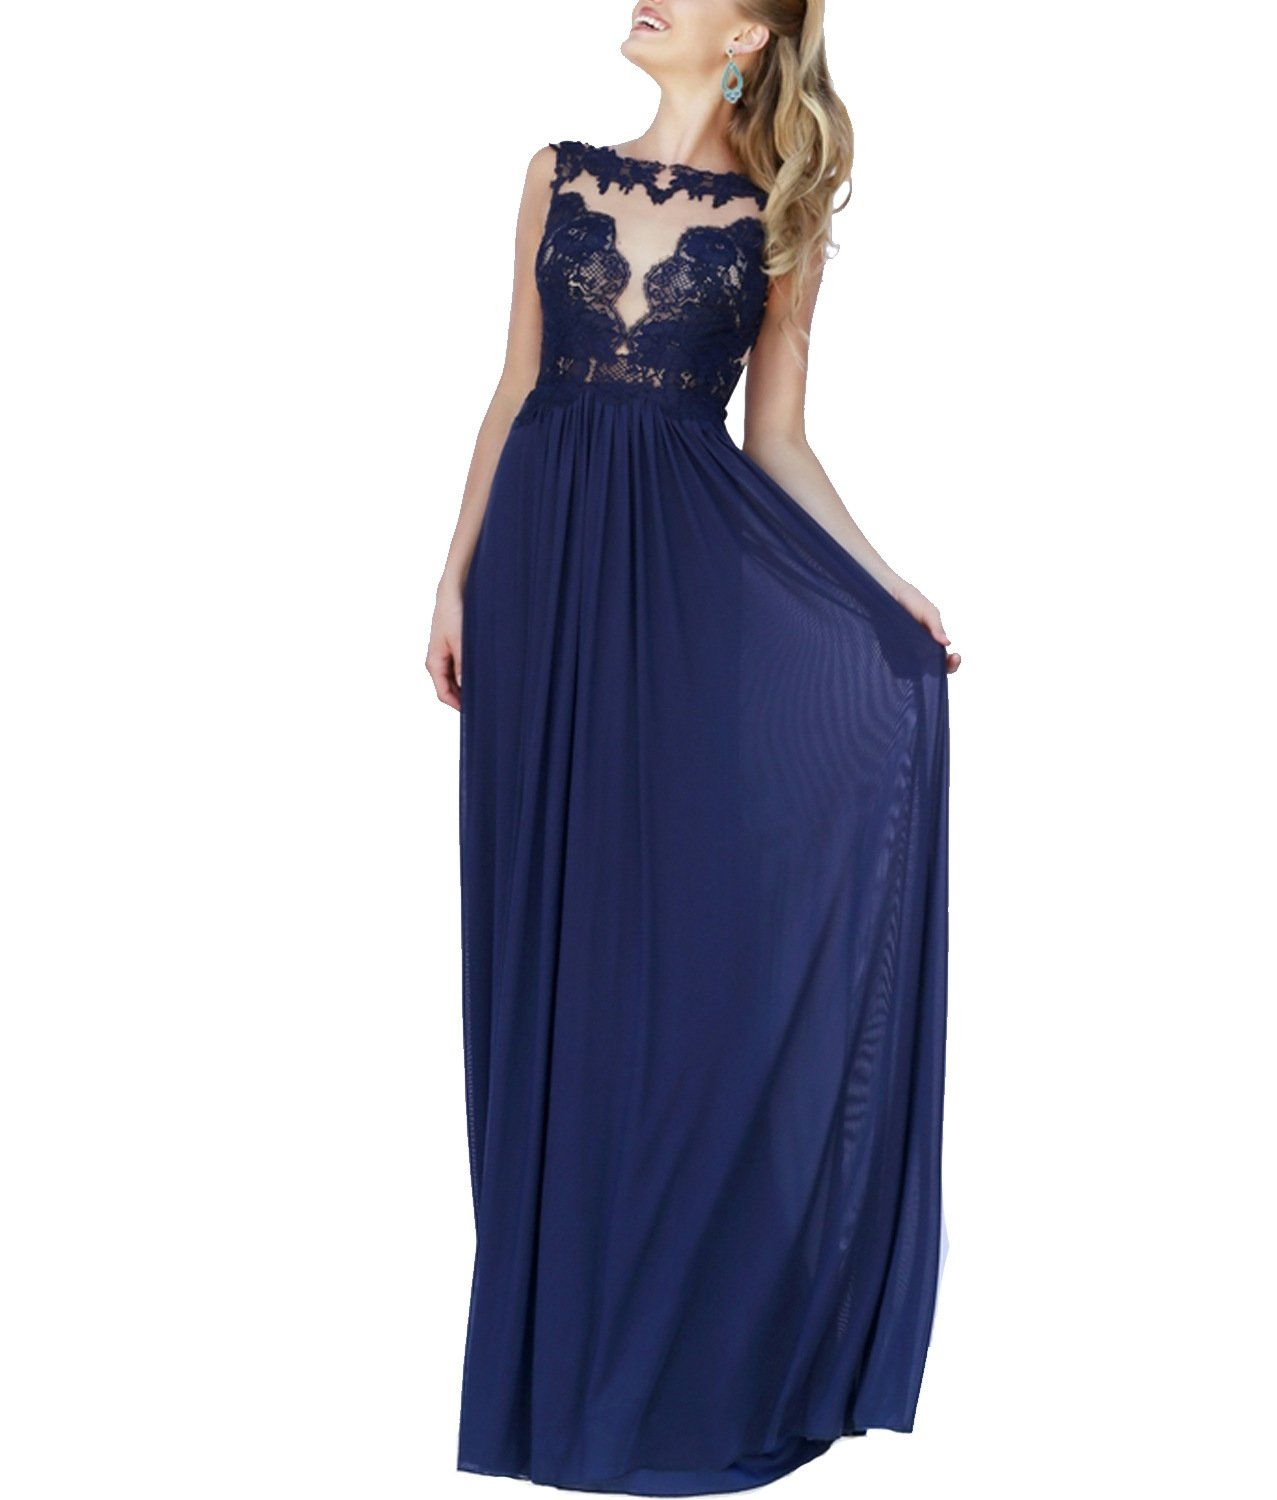 Queen club backless scalloped sleeveless royal blue prom dress long